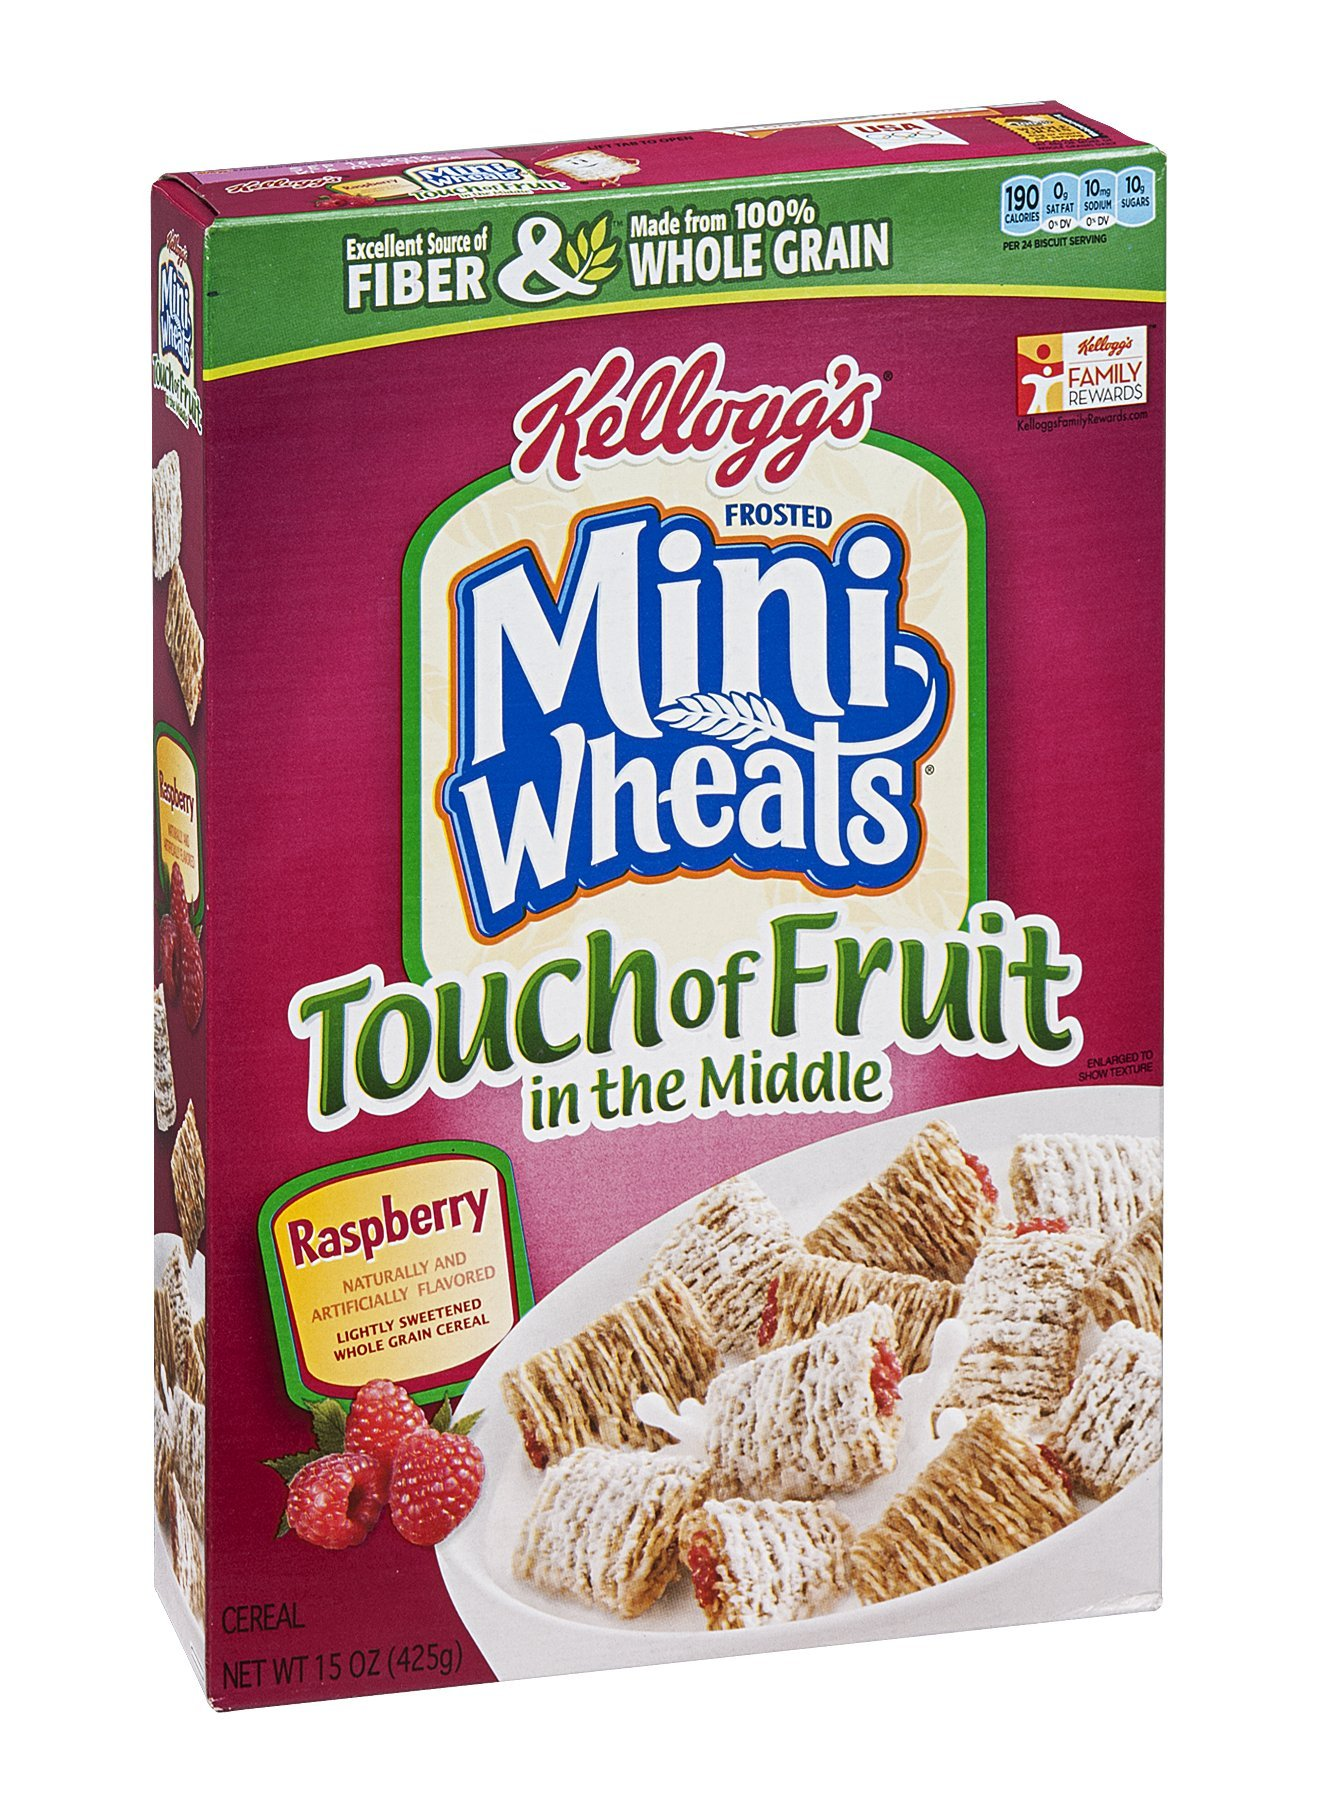 Kellogg's Frosted Mini Wheats Touch Of Fruit In The Middle Raspberry Cereal 15 OZ (Pack of 20) by Frosted Mini-Wheats